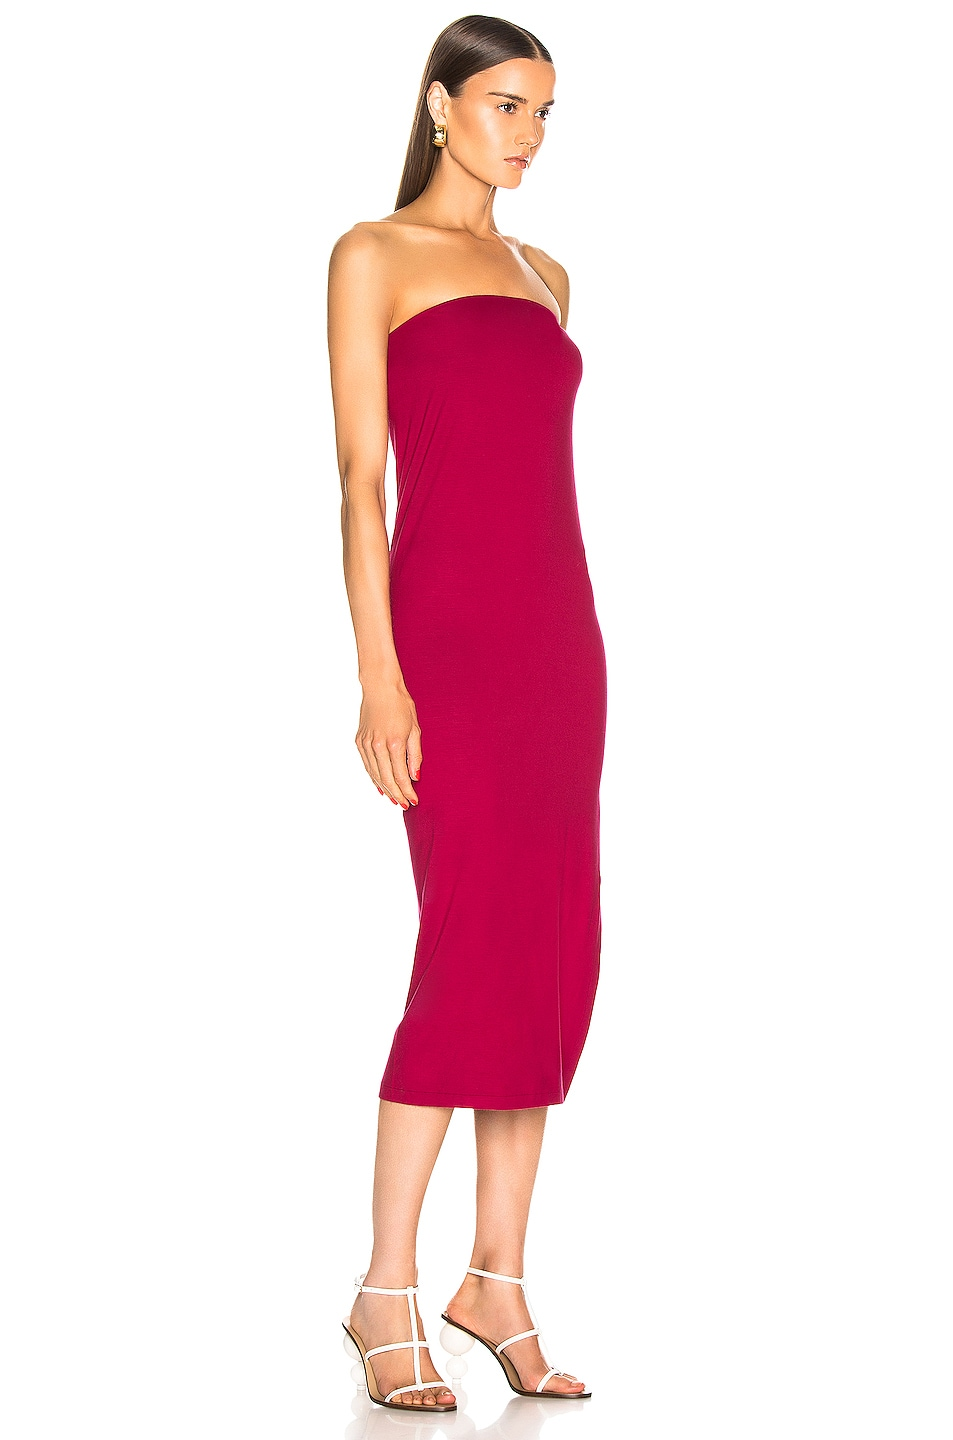 Image 2 of Enza Costa for FWRD Side Slit Dress in Fuchsia Red